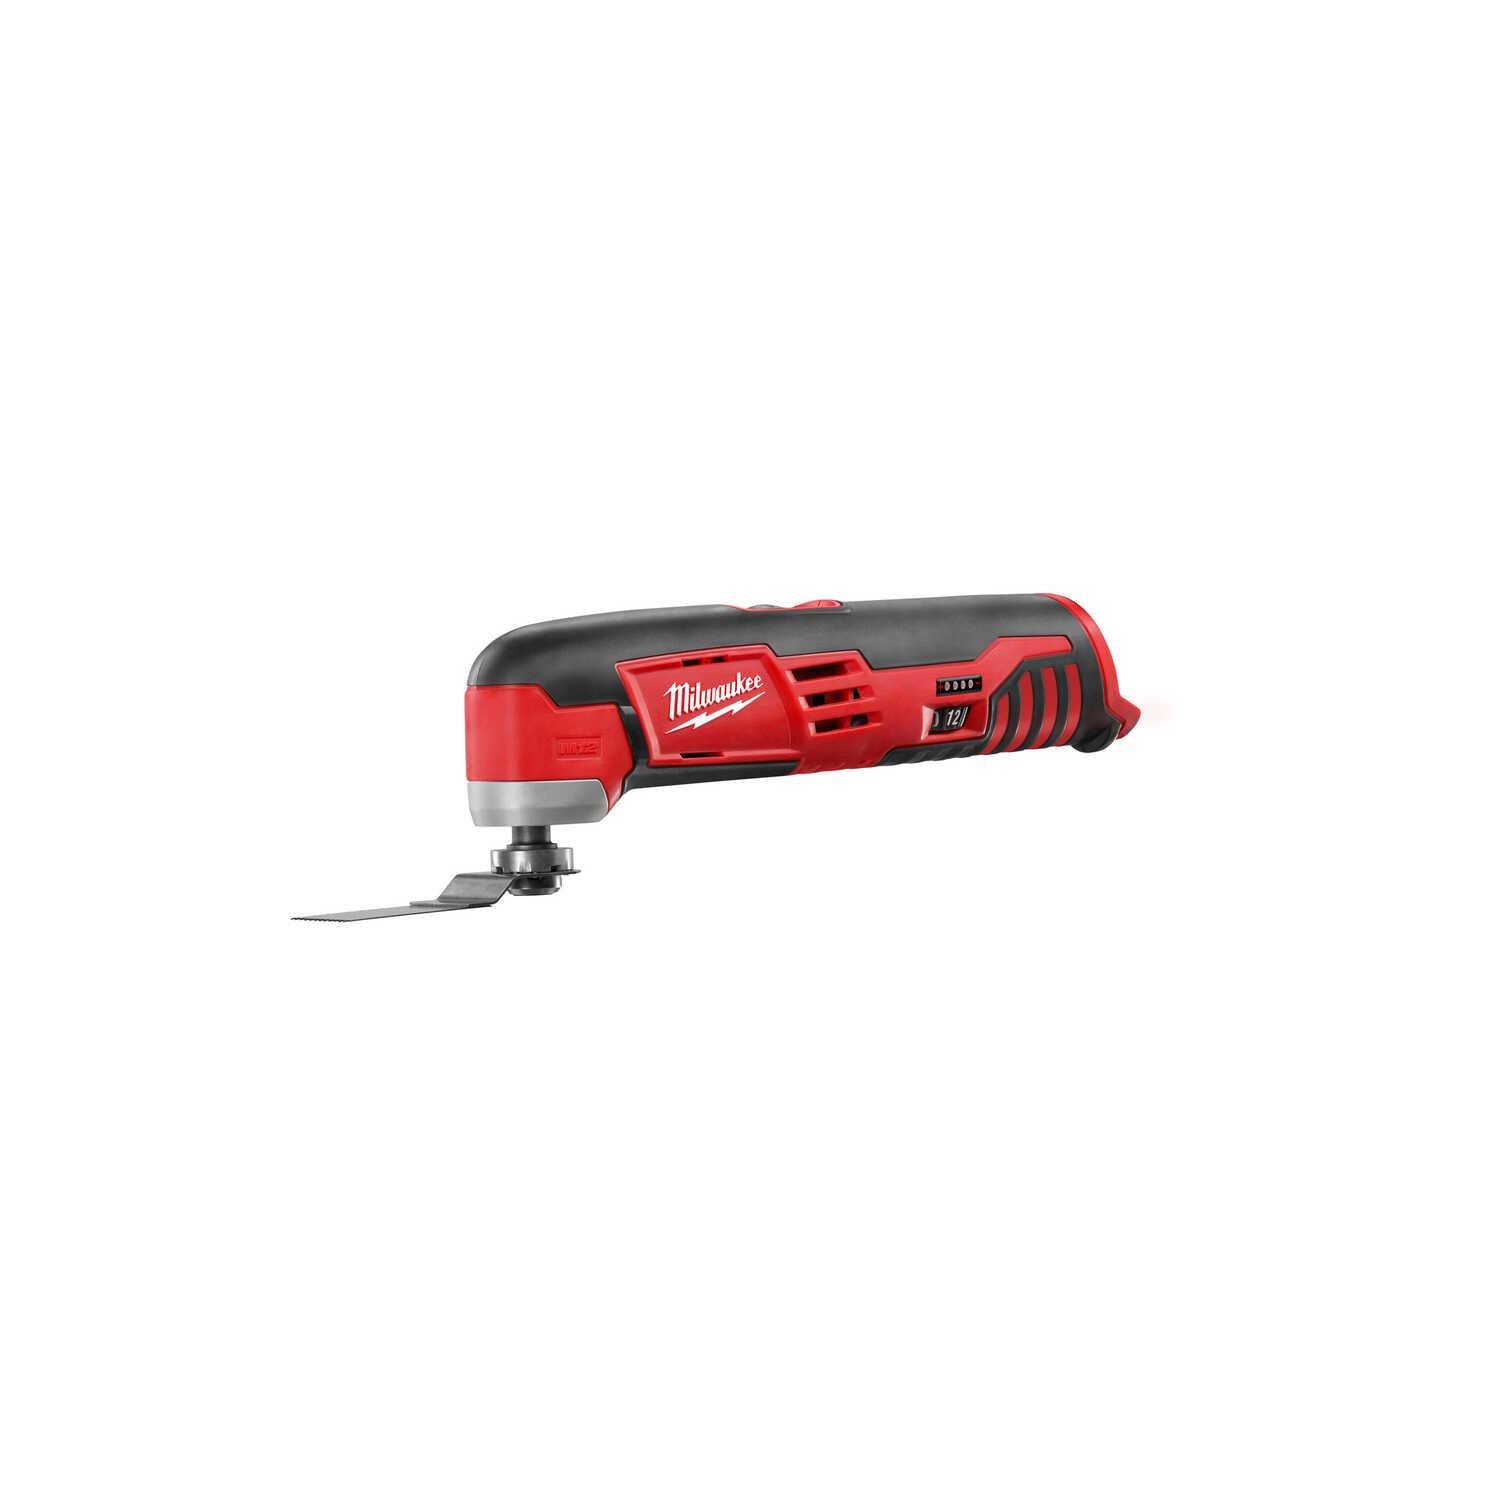 Milwaukee  M12  12 volt Cordless  Oscillating Multi-Tool  20000 opm Red  1 pc.